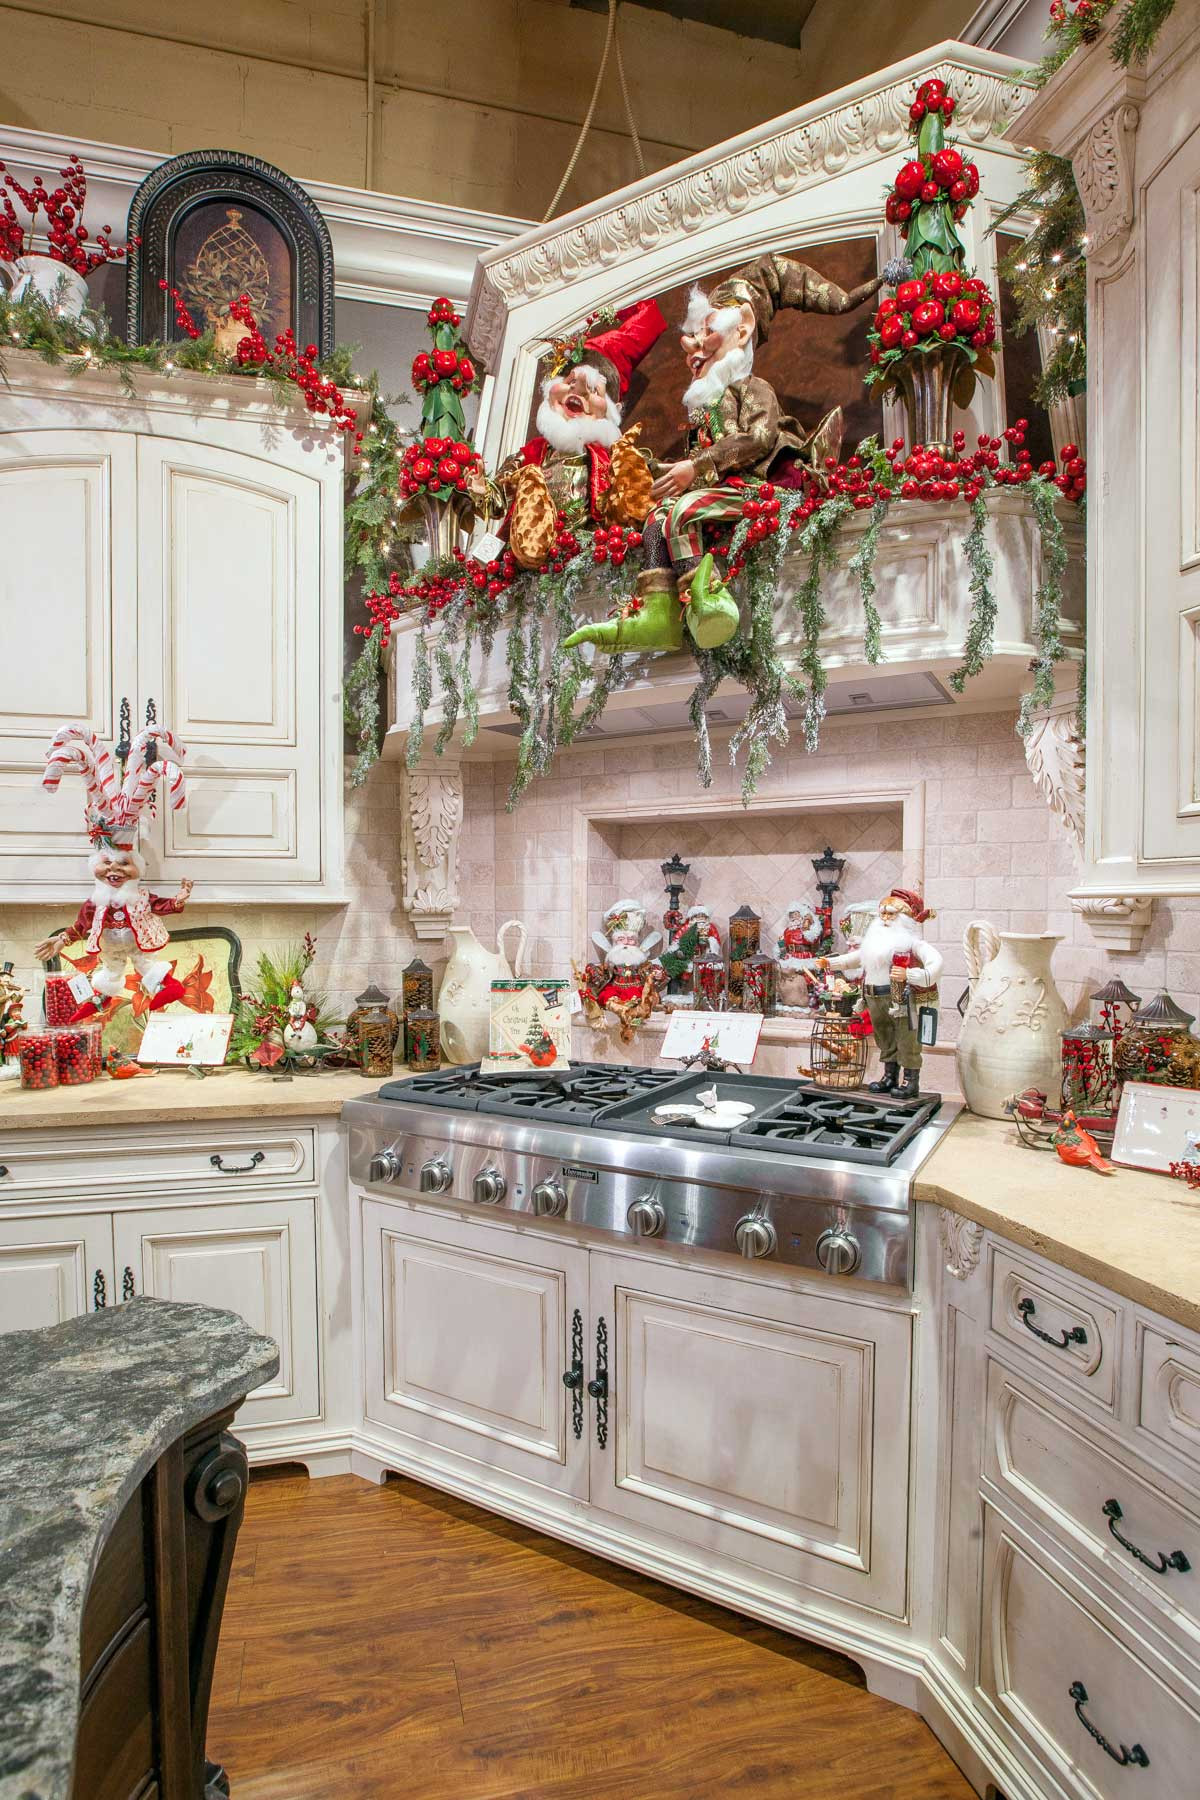 Best ideas about Kitchen Decorating Accessories . Save or Pin Christmas Home Decor LINLY DESIGNS Now.